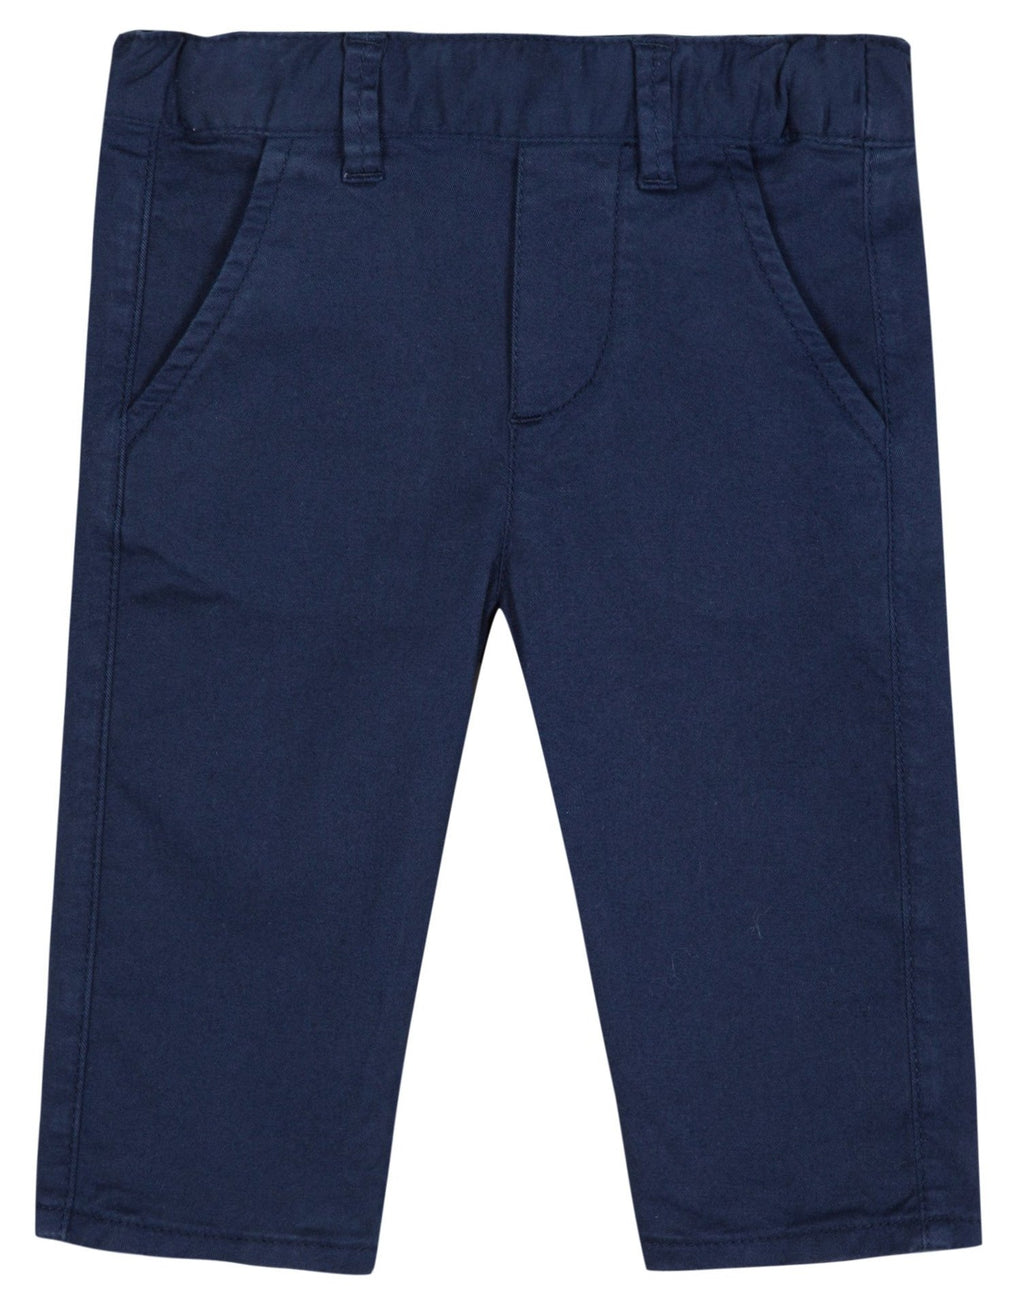 Tartine Pantalon12 Cotton Pant